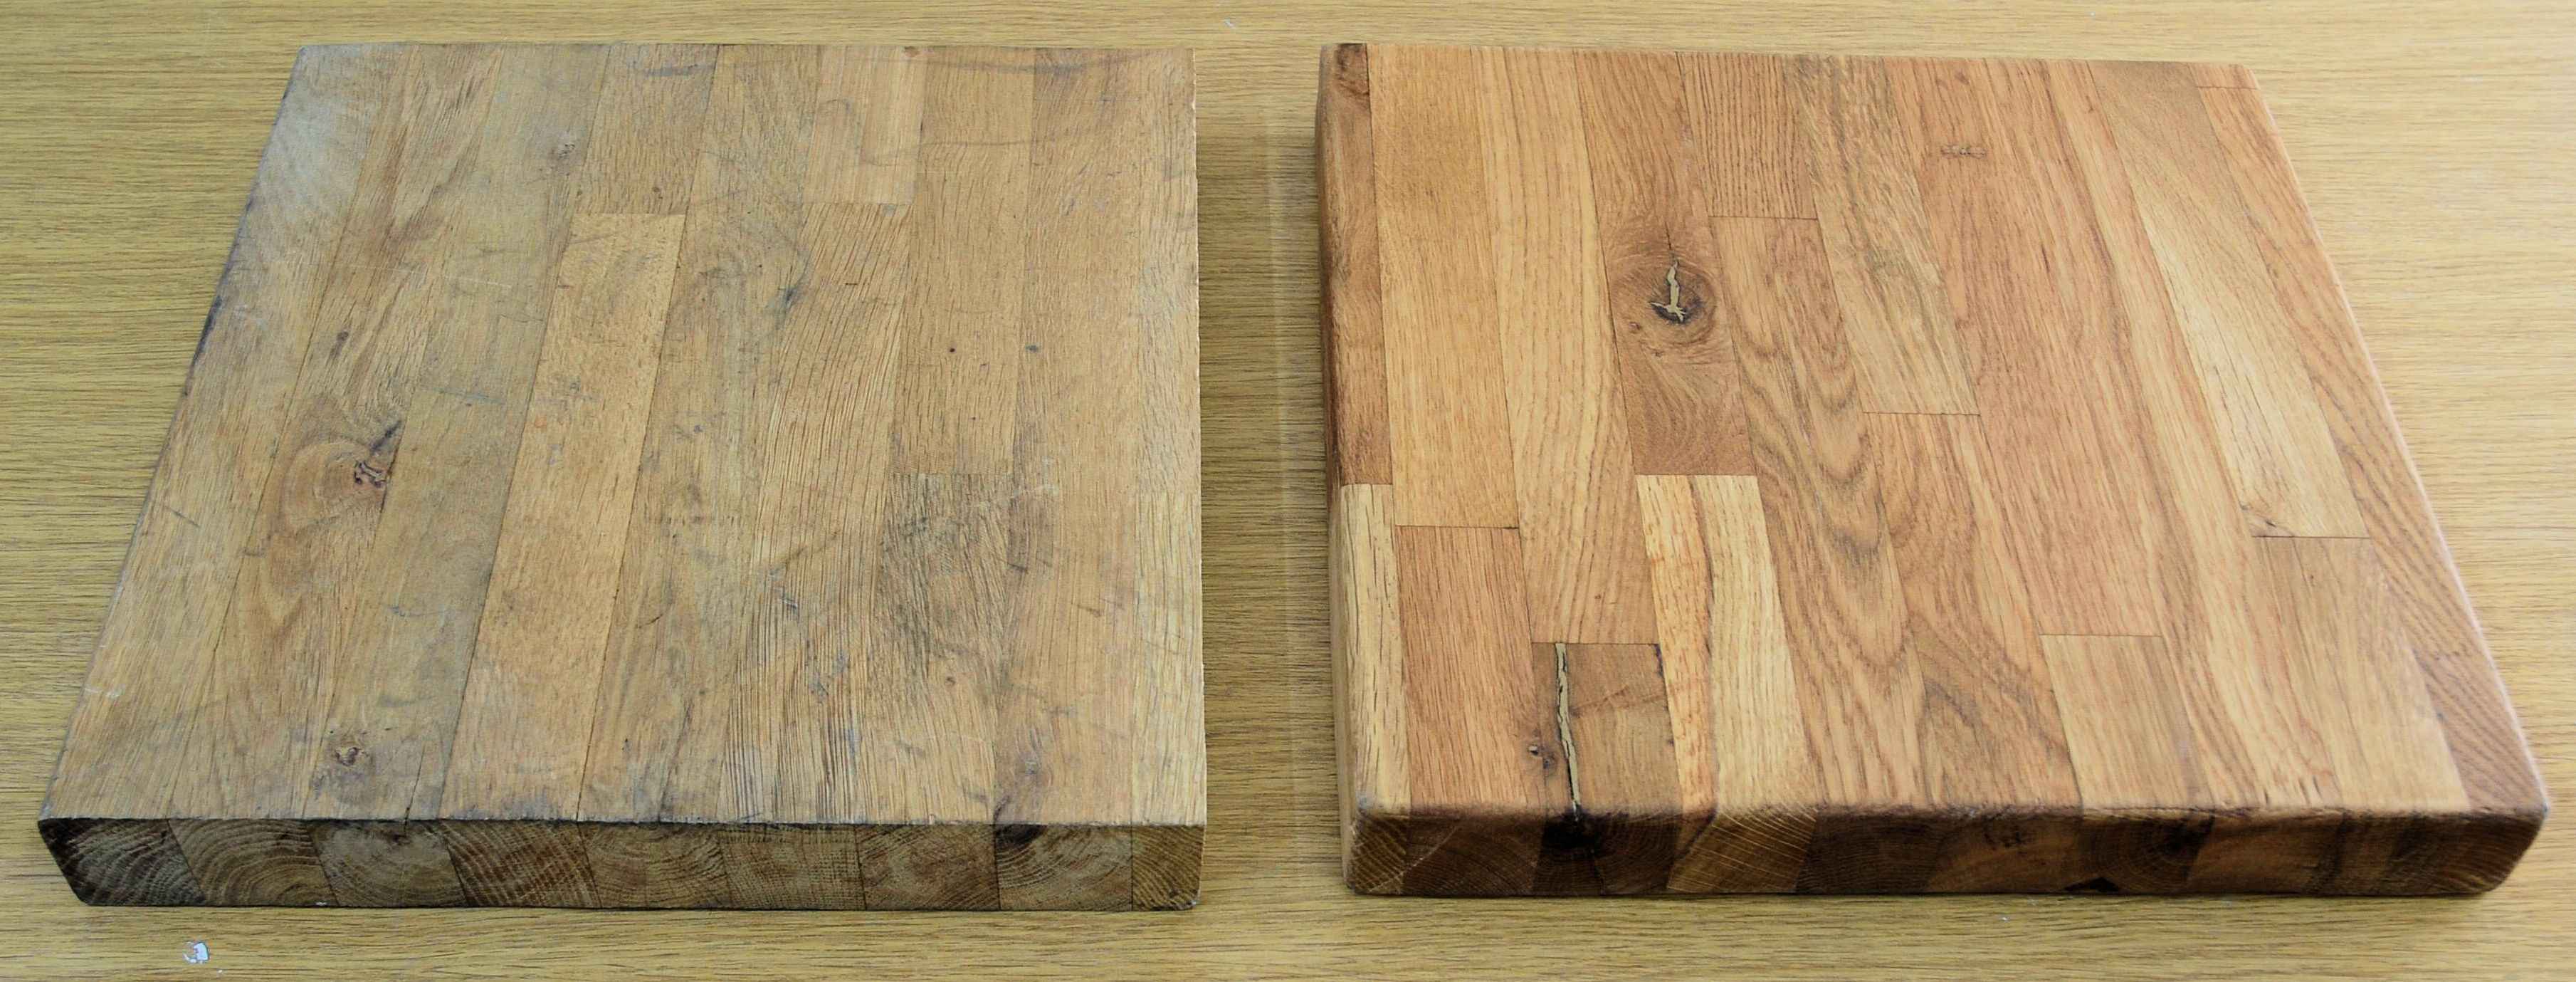 Tung Oil For Sale